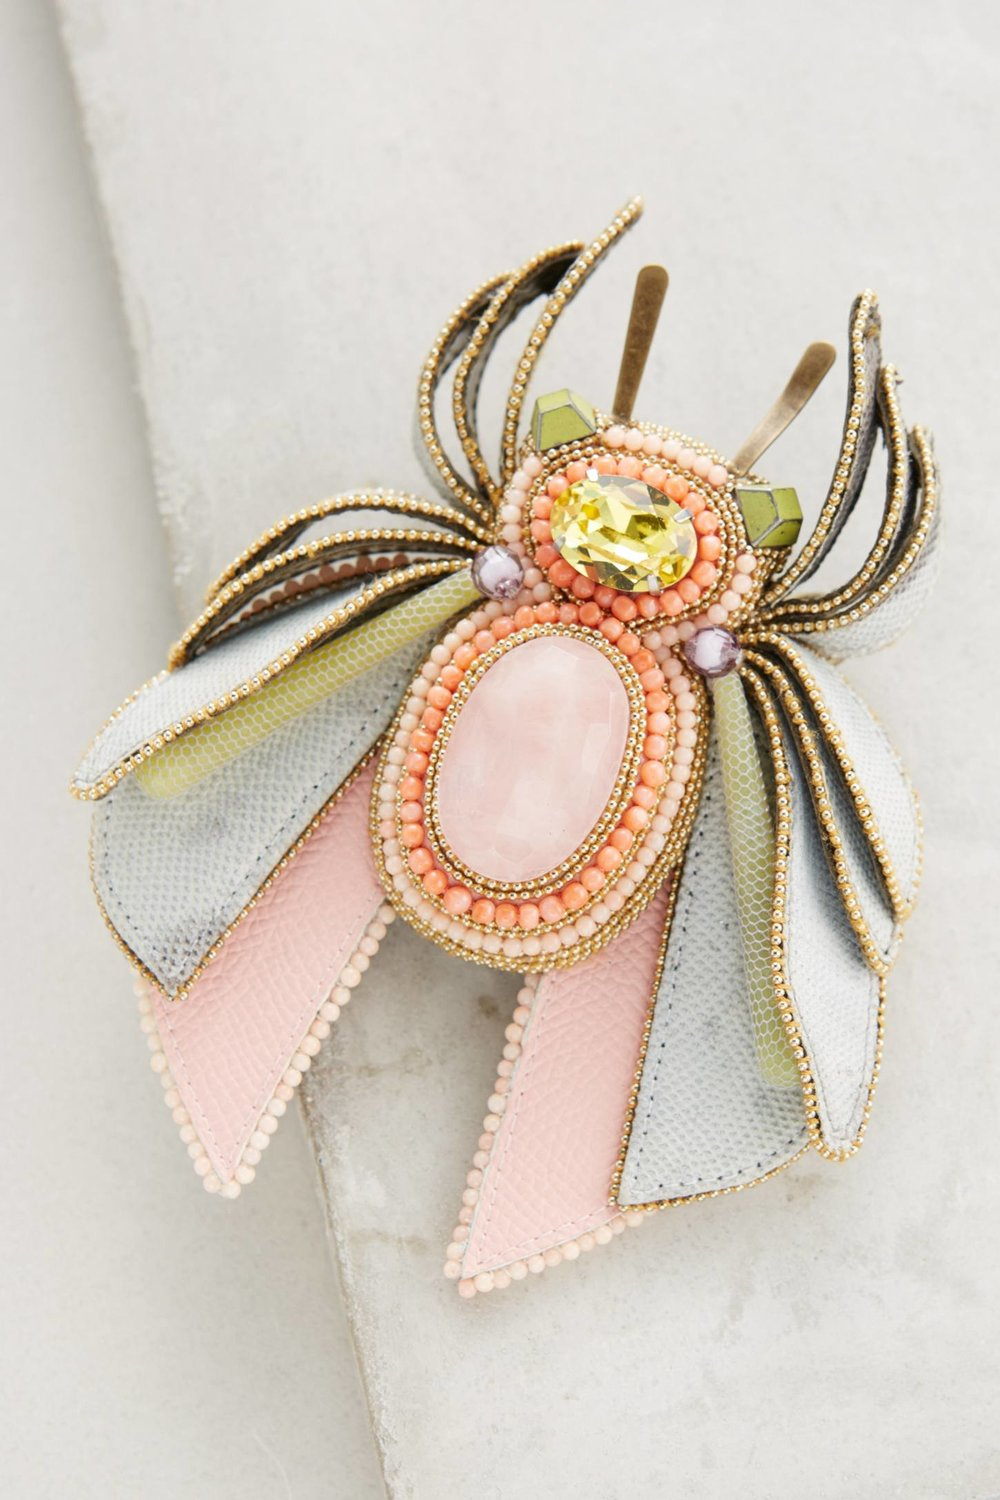 Beatie Bug Brooch. Available in multiple colors. Anthropologie. $728.